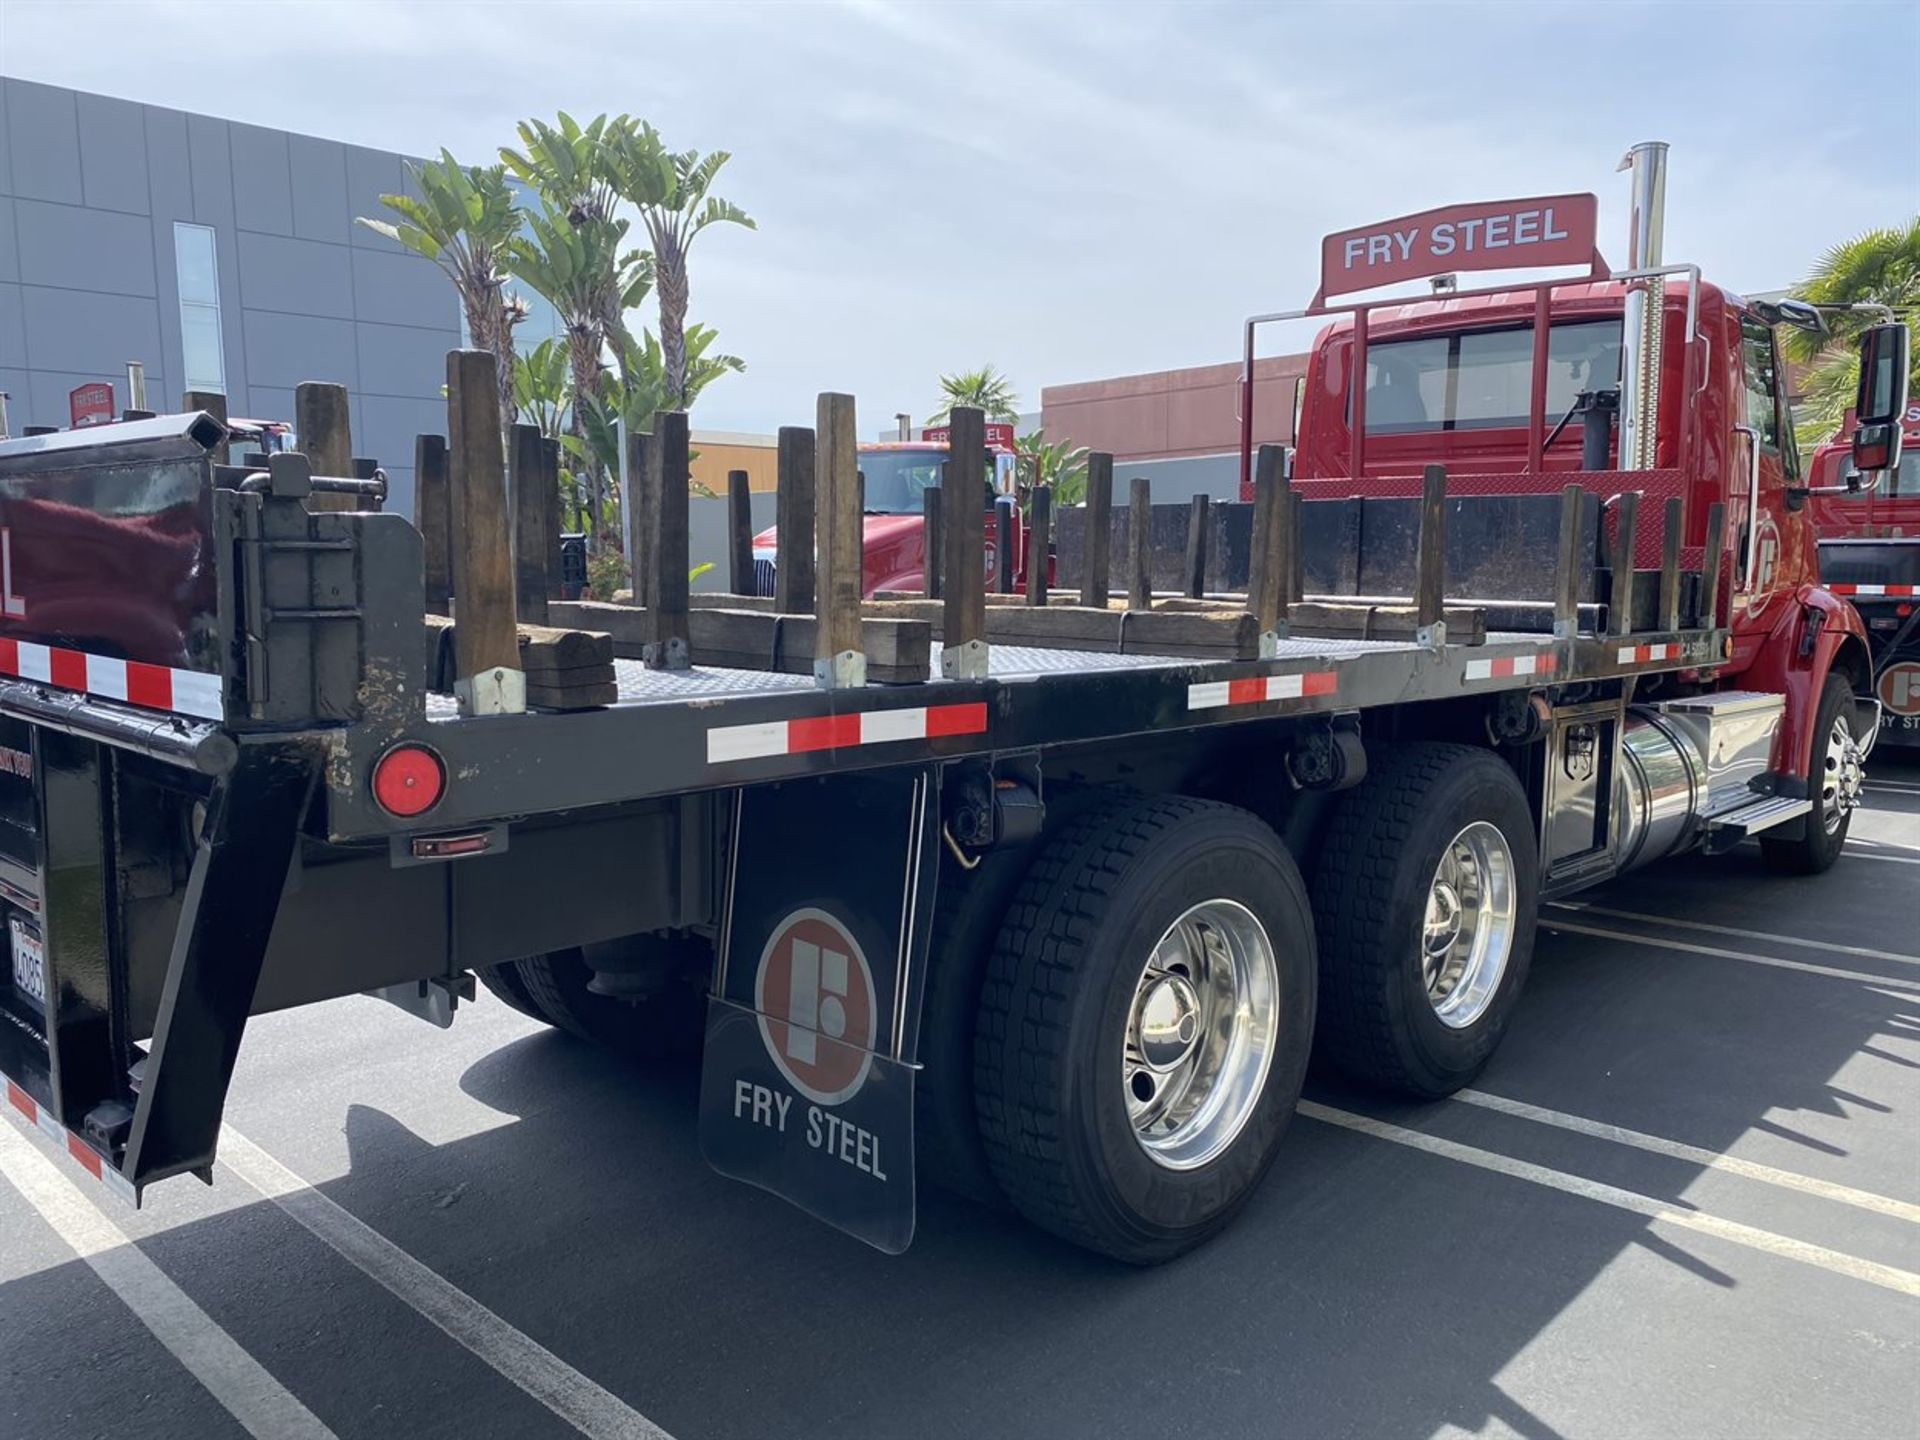 2016 INTERNATIONAL 18' Stake Bed Truck, VIN 3HTHXSNR1GN003236, 125,809 Miles at time of inspection - Image 6 of 20